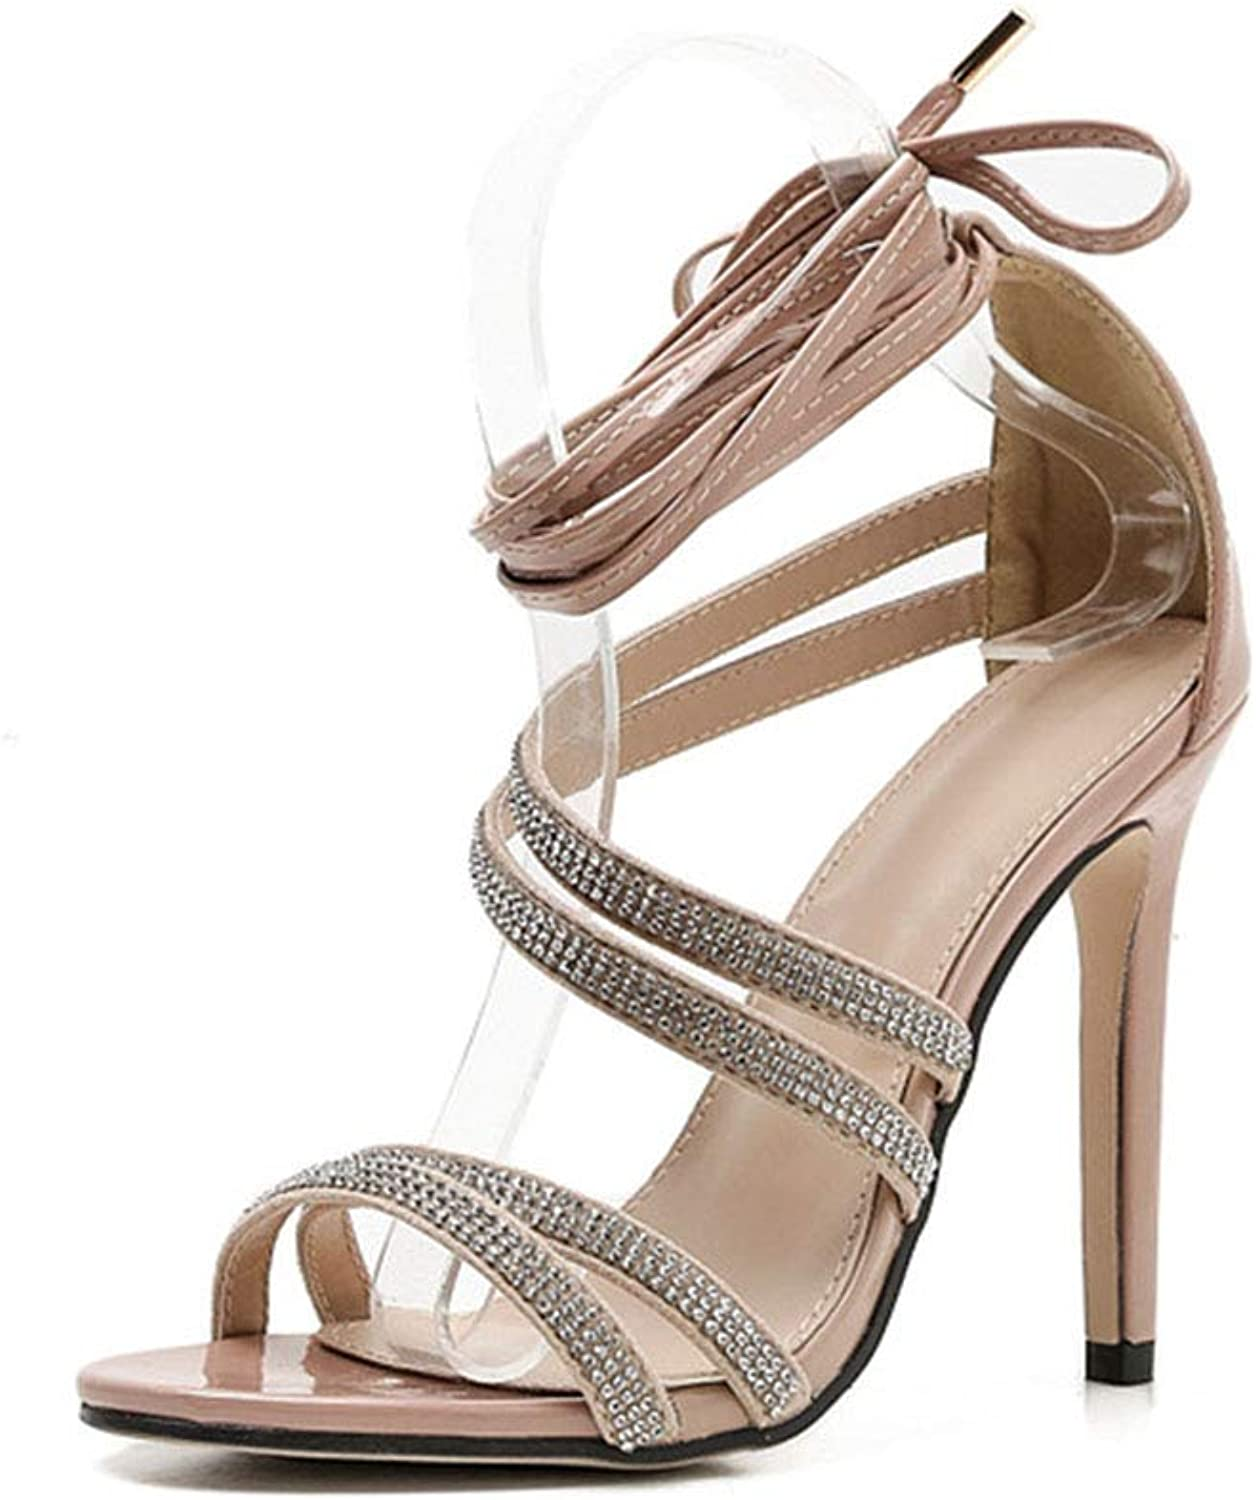 XDLEX Women's Bling Strappy Heeled Sandals Gladiator Stiletto Open Toe Pointy Toe Ankle Lace up Roman Pumps Glitter Embellished Rhinestone Cover Belts Heels